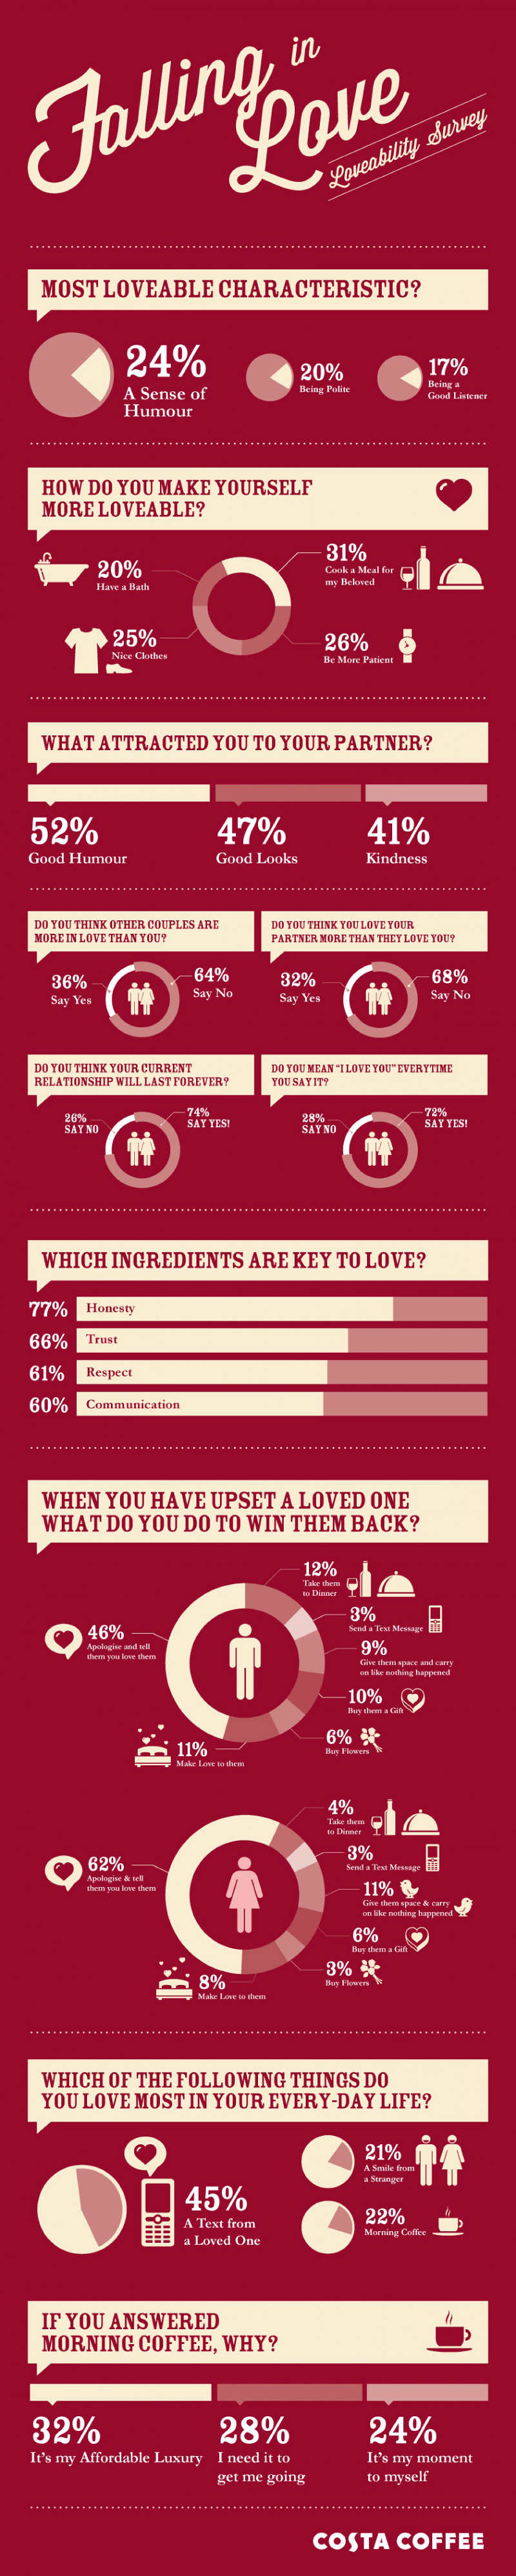 Most Common Characteristics for Finding Love